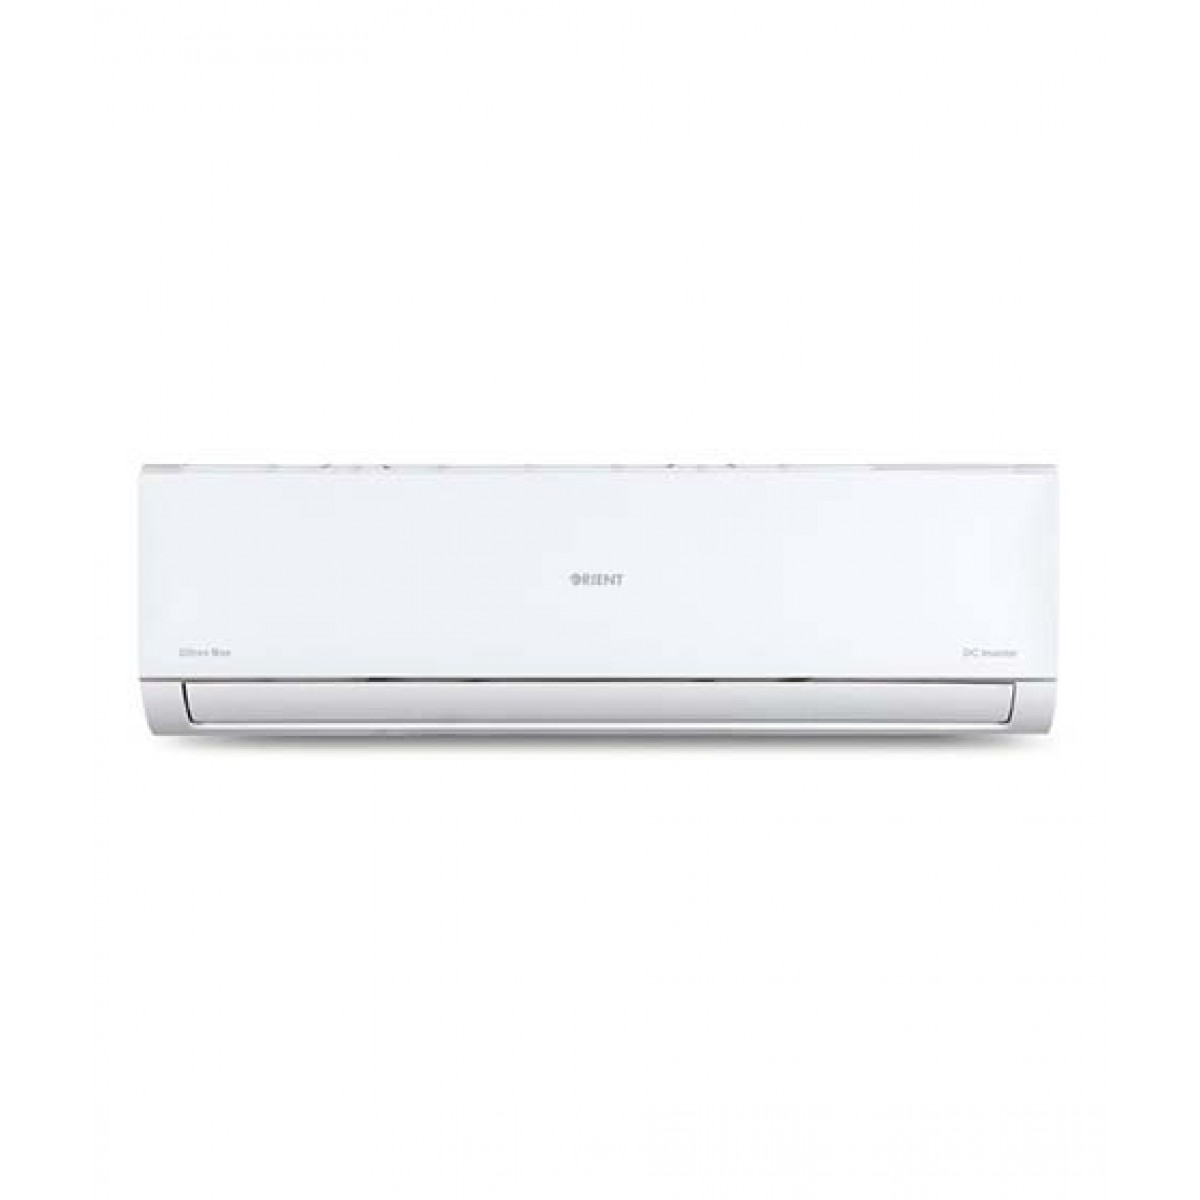 size 40 e9637 68209 Orient Ultron Max DC Inverter Air Conditioner Price in Pakistan   Buy  Orient DC Inverter Air Conditioner 1.5 Ton Silk White   iShopping.pk